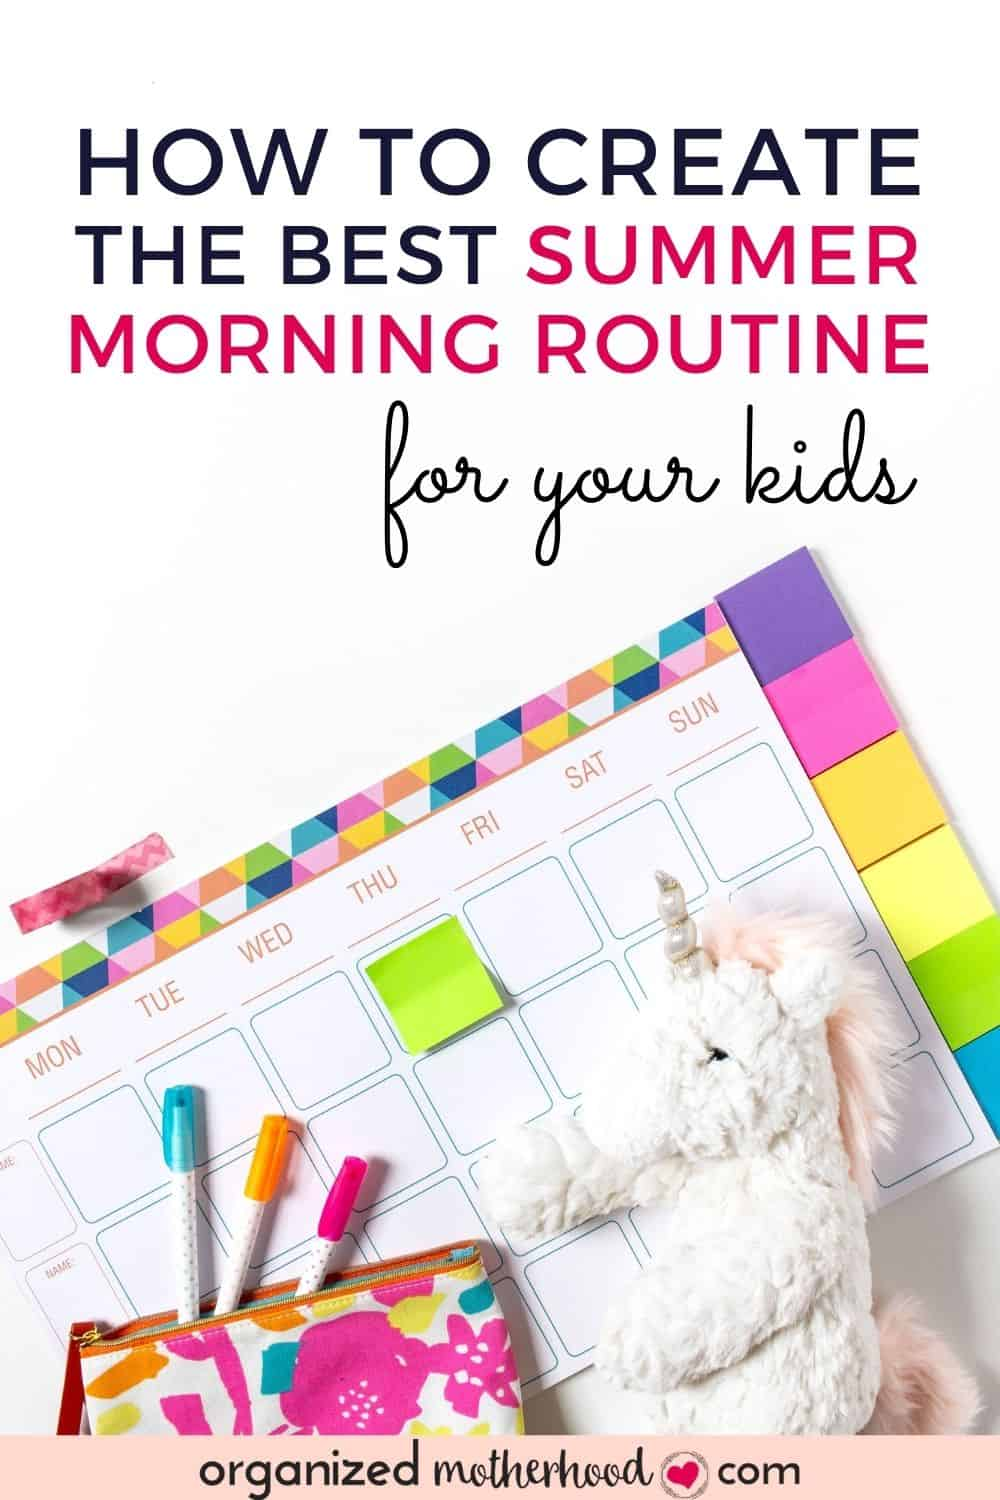 Create the best summer morning routine for kids with these simple tips.